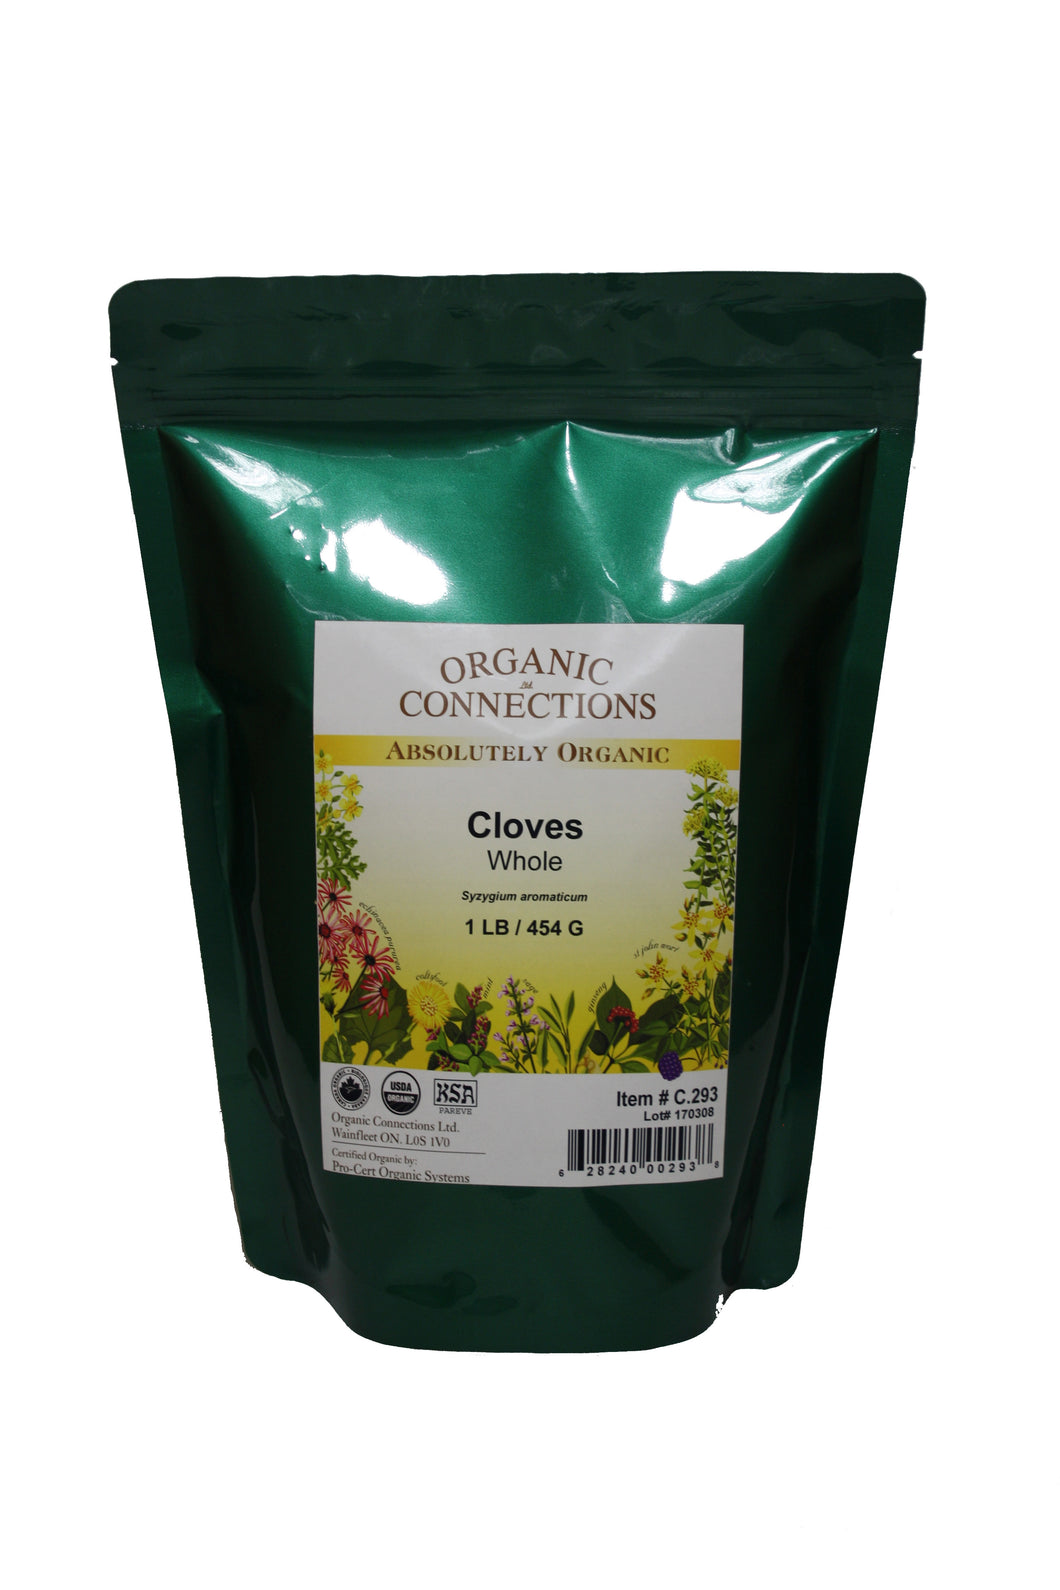 Organic Connections, Cloves, Whole, Organic (1 lb)